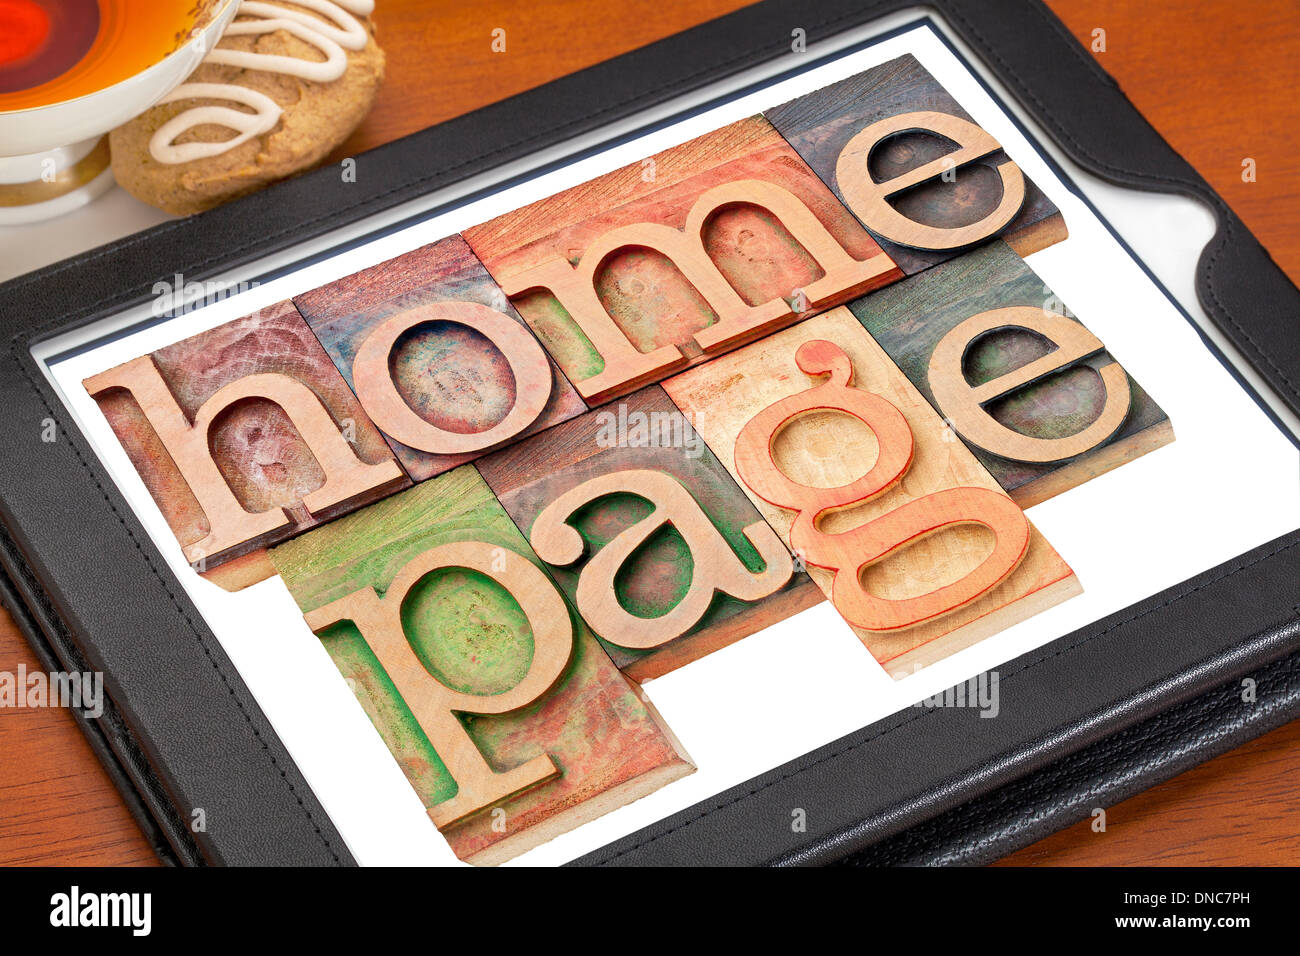 home page - text in letterpress wood type on a digital tablet with cup of tea - Stock Image